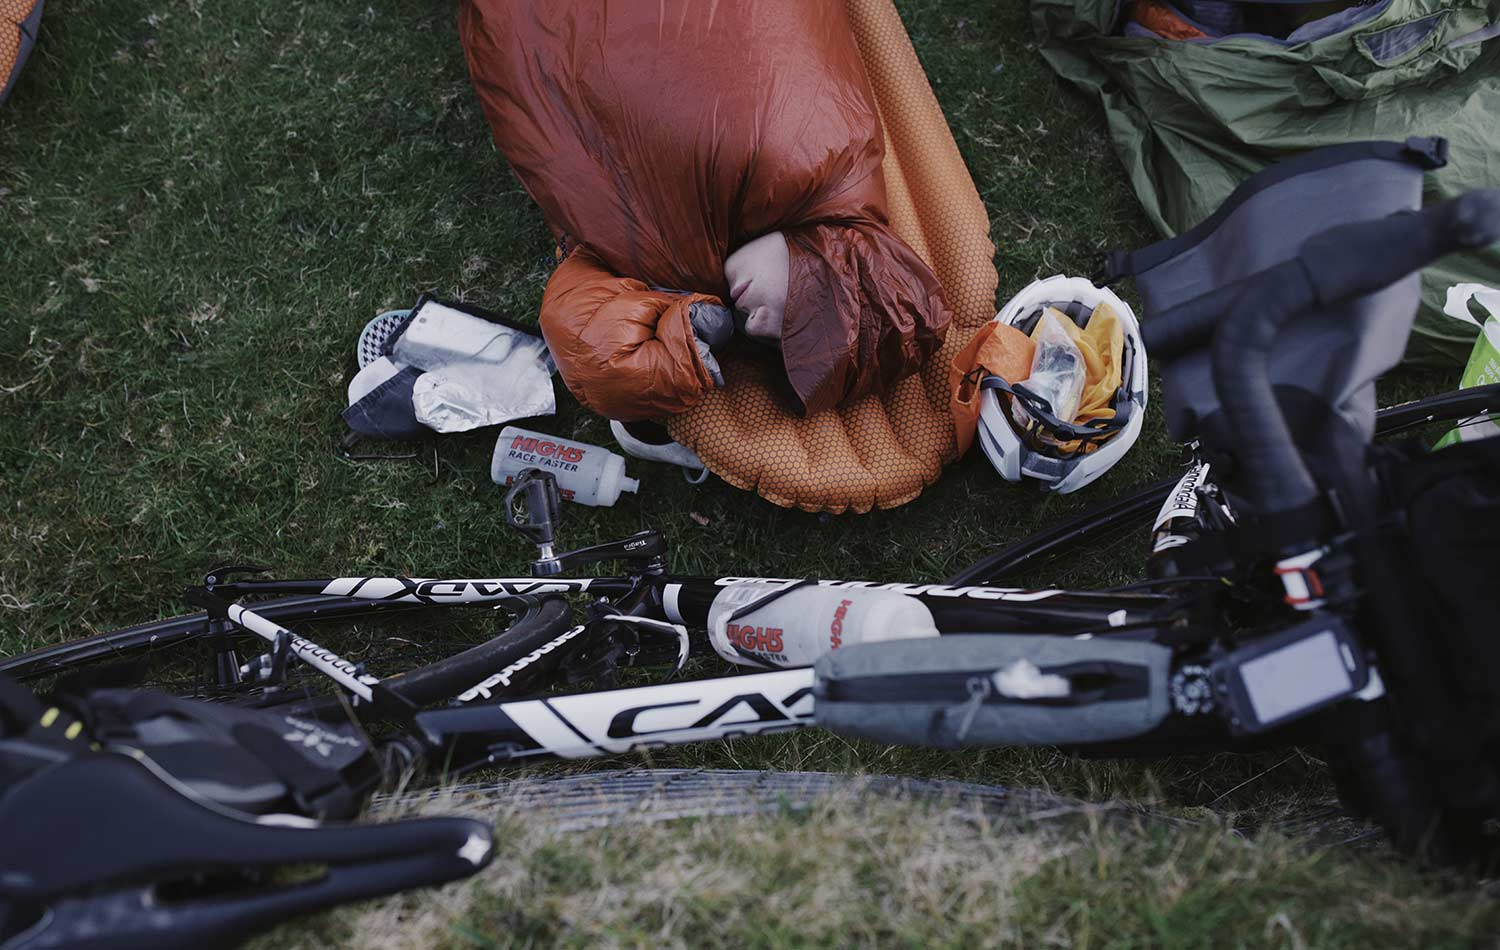 Where to sleep on a bikepacking trip | Apidura